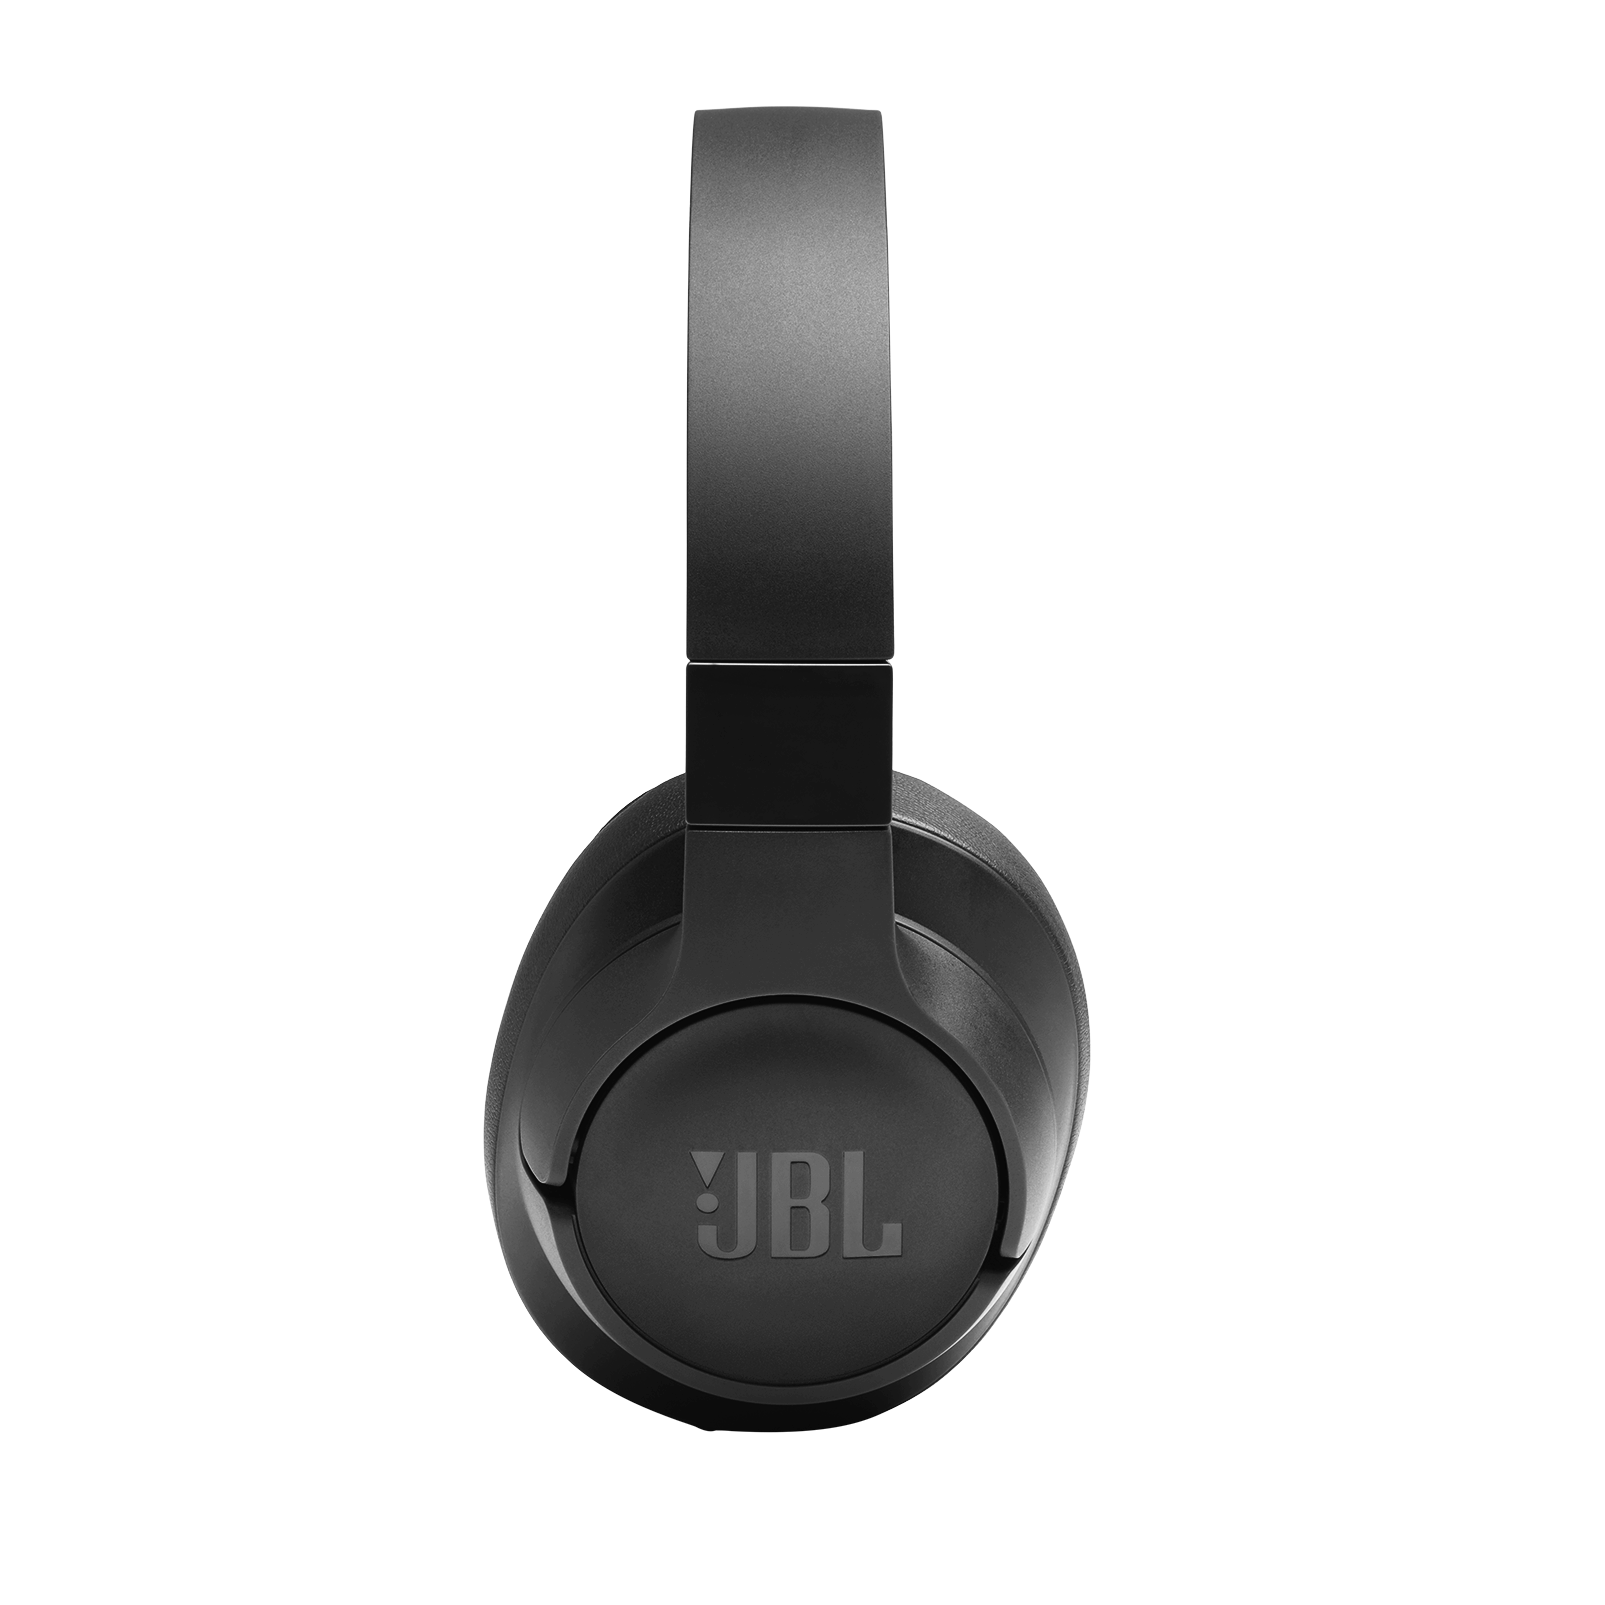 JBL TUNE 700BT - Black - Wireless Over-Ear Headphones - Detailshot 4